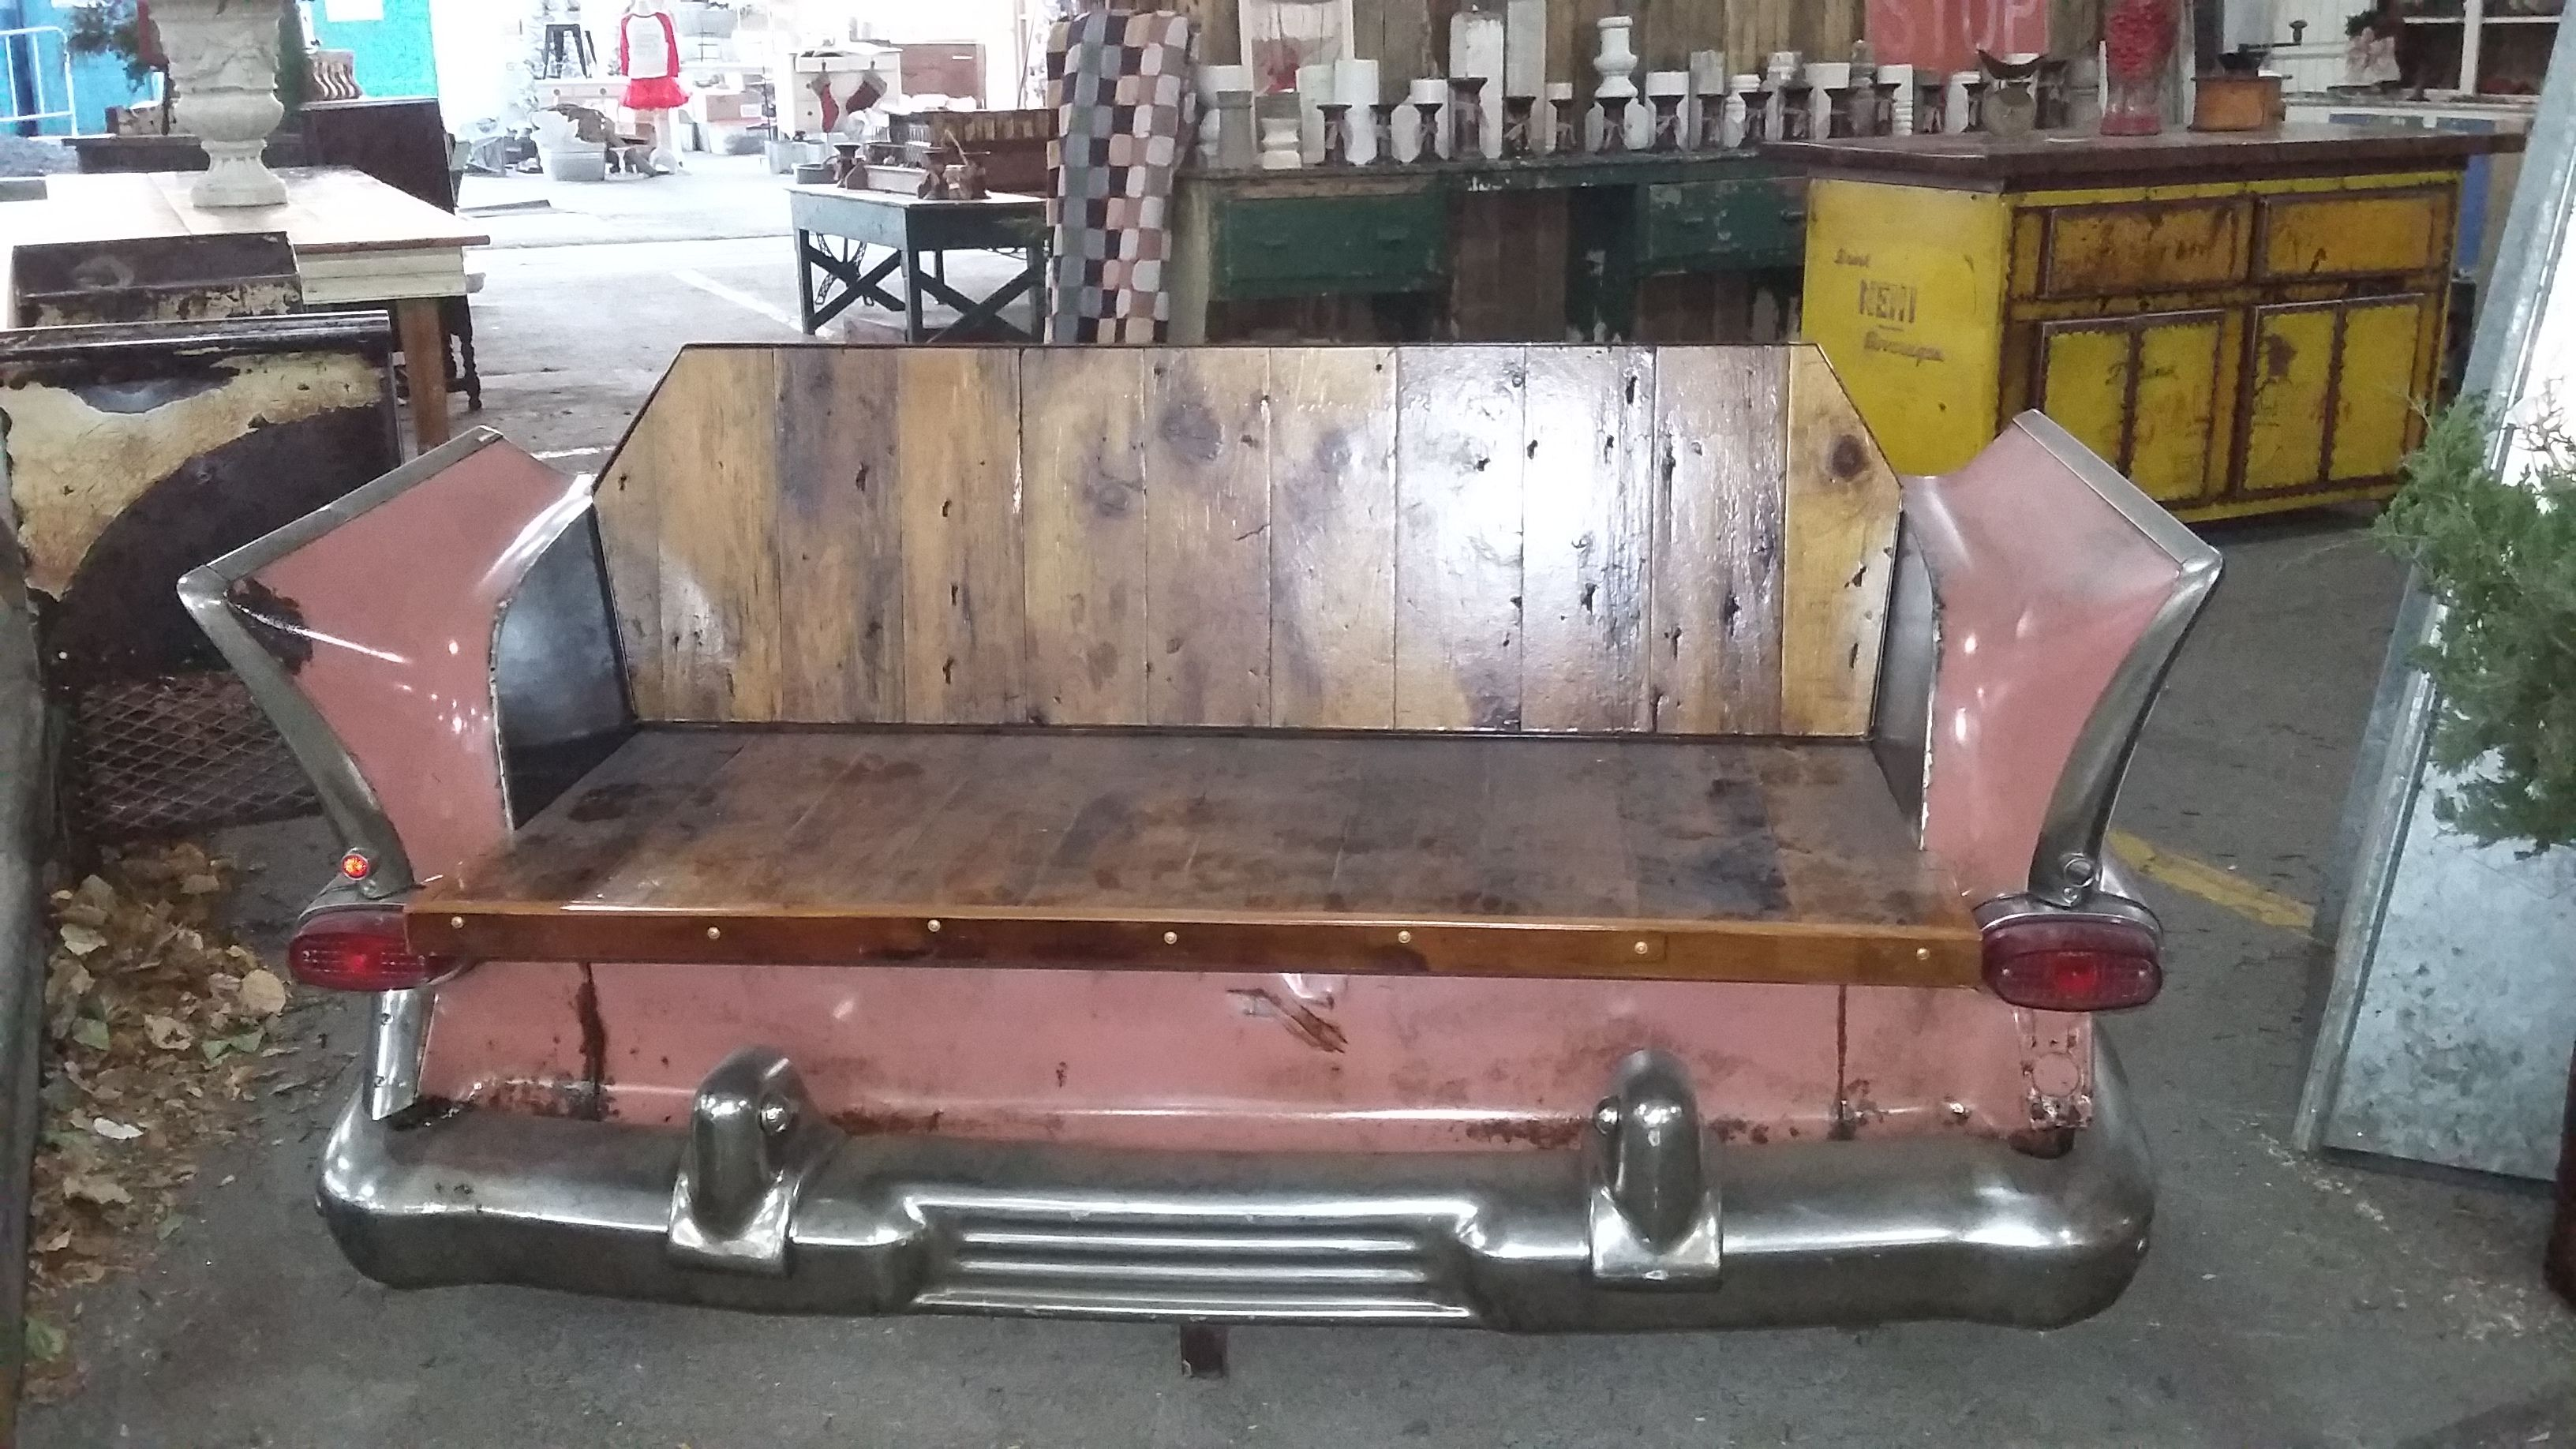 Surprising Car Bench Seat Rambler Bench Made By Midwest Fabricating Caraccident5 Cool Chair Designs And Ideas Caraccident5Info